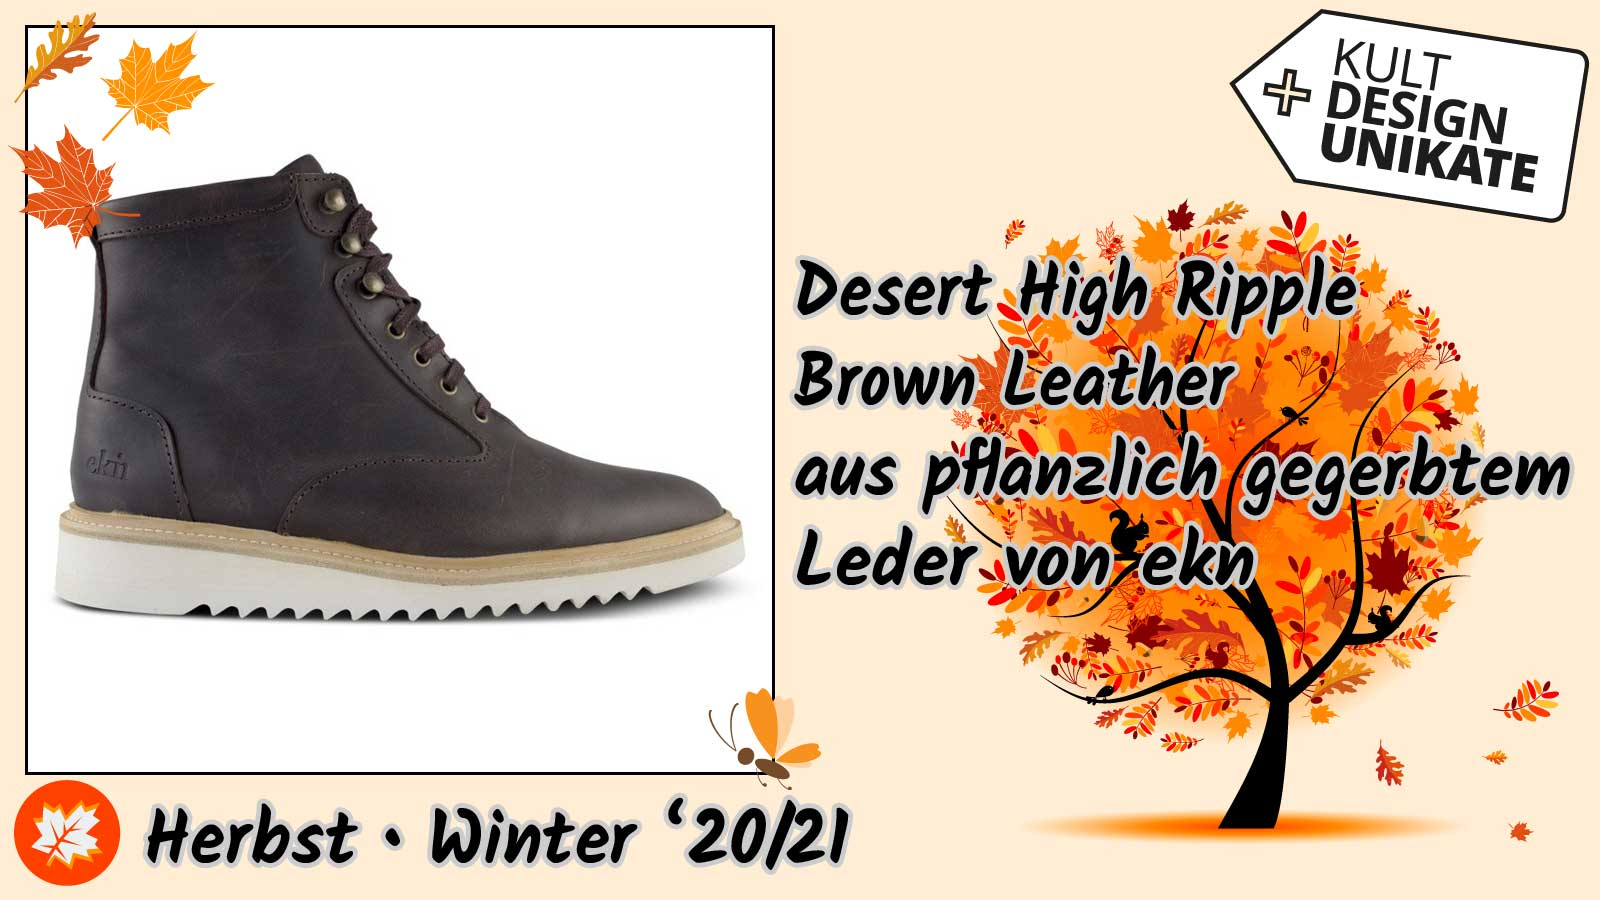 ekn-Desert-High-Ripple-Brown-Leather